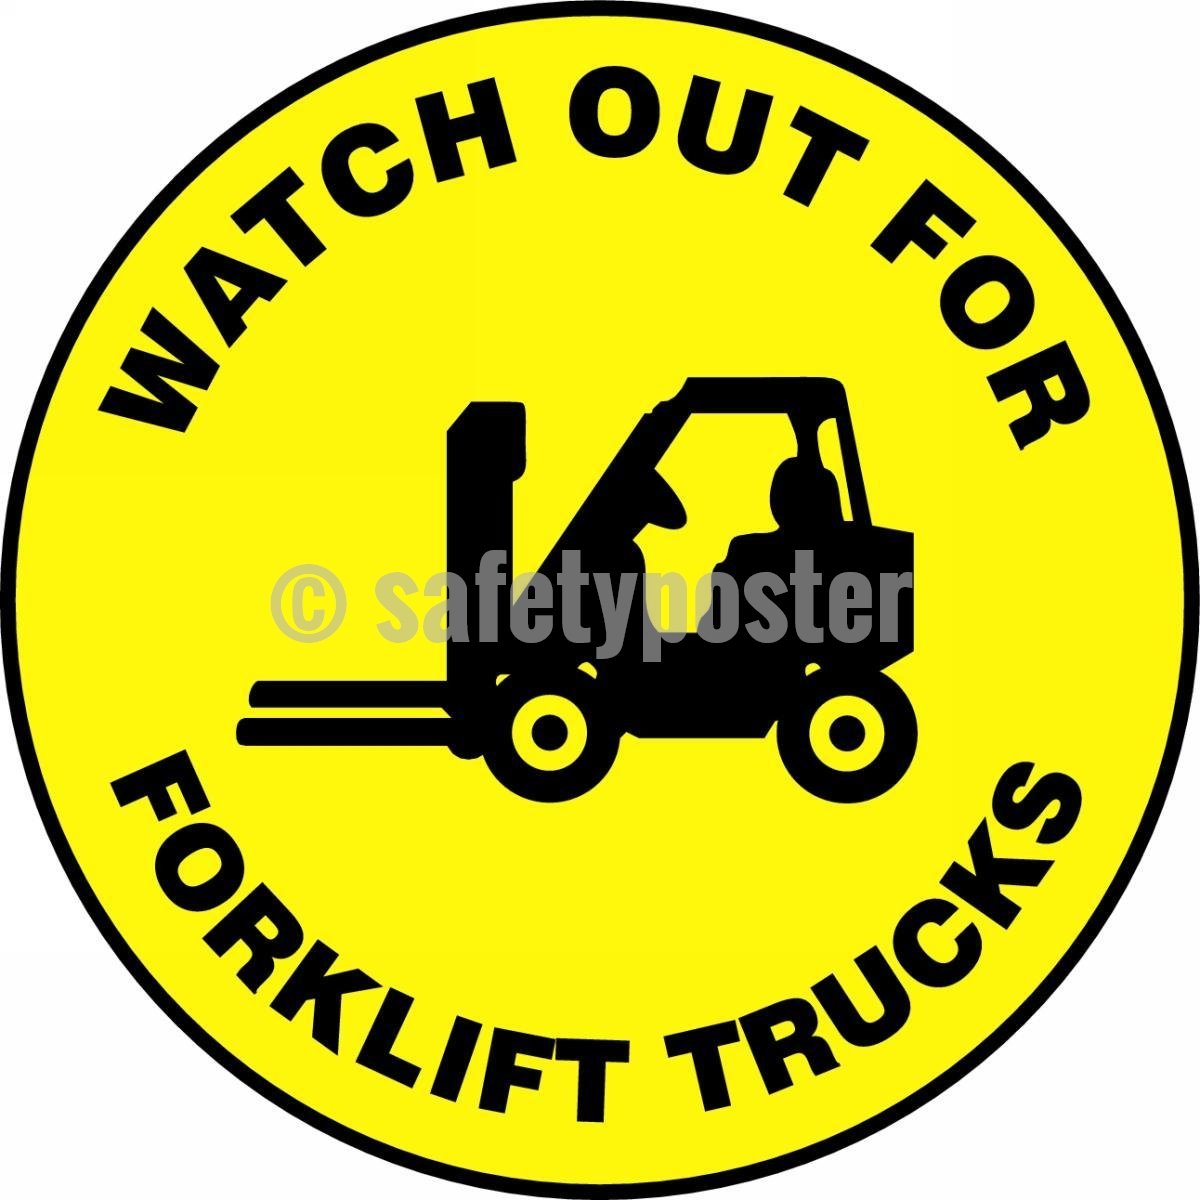 Watch Out For Forklift Trucks - Floor Sign Adhesive Signs